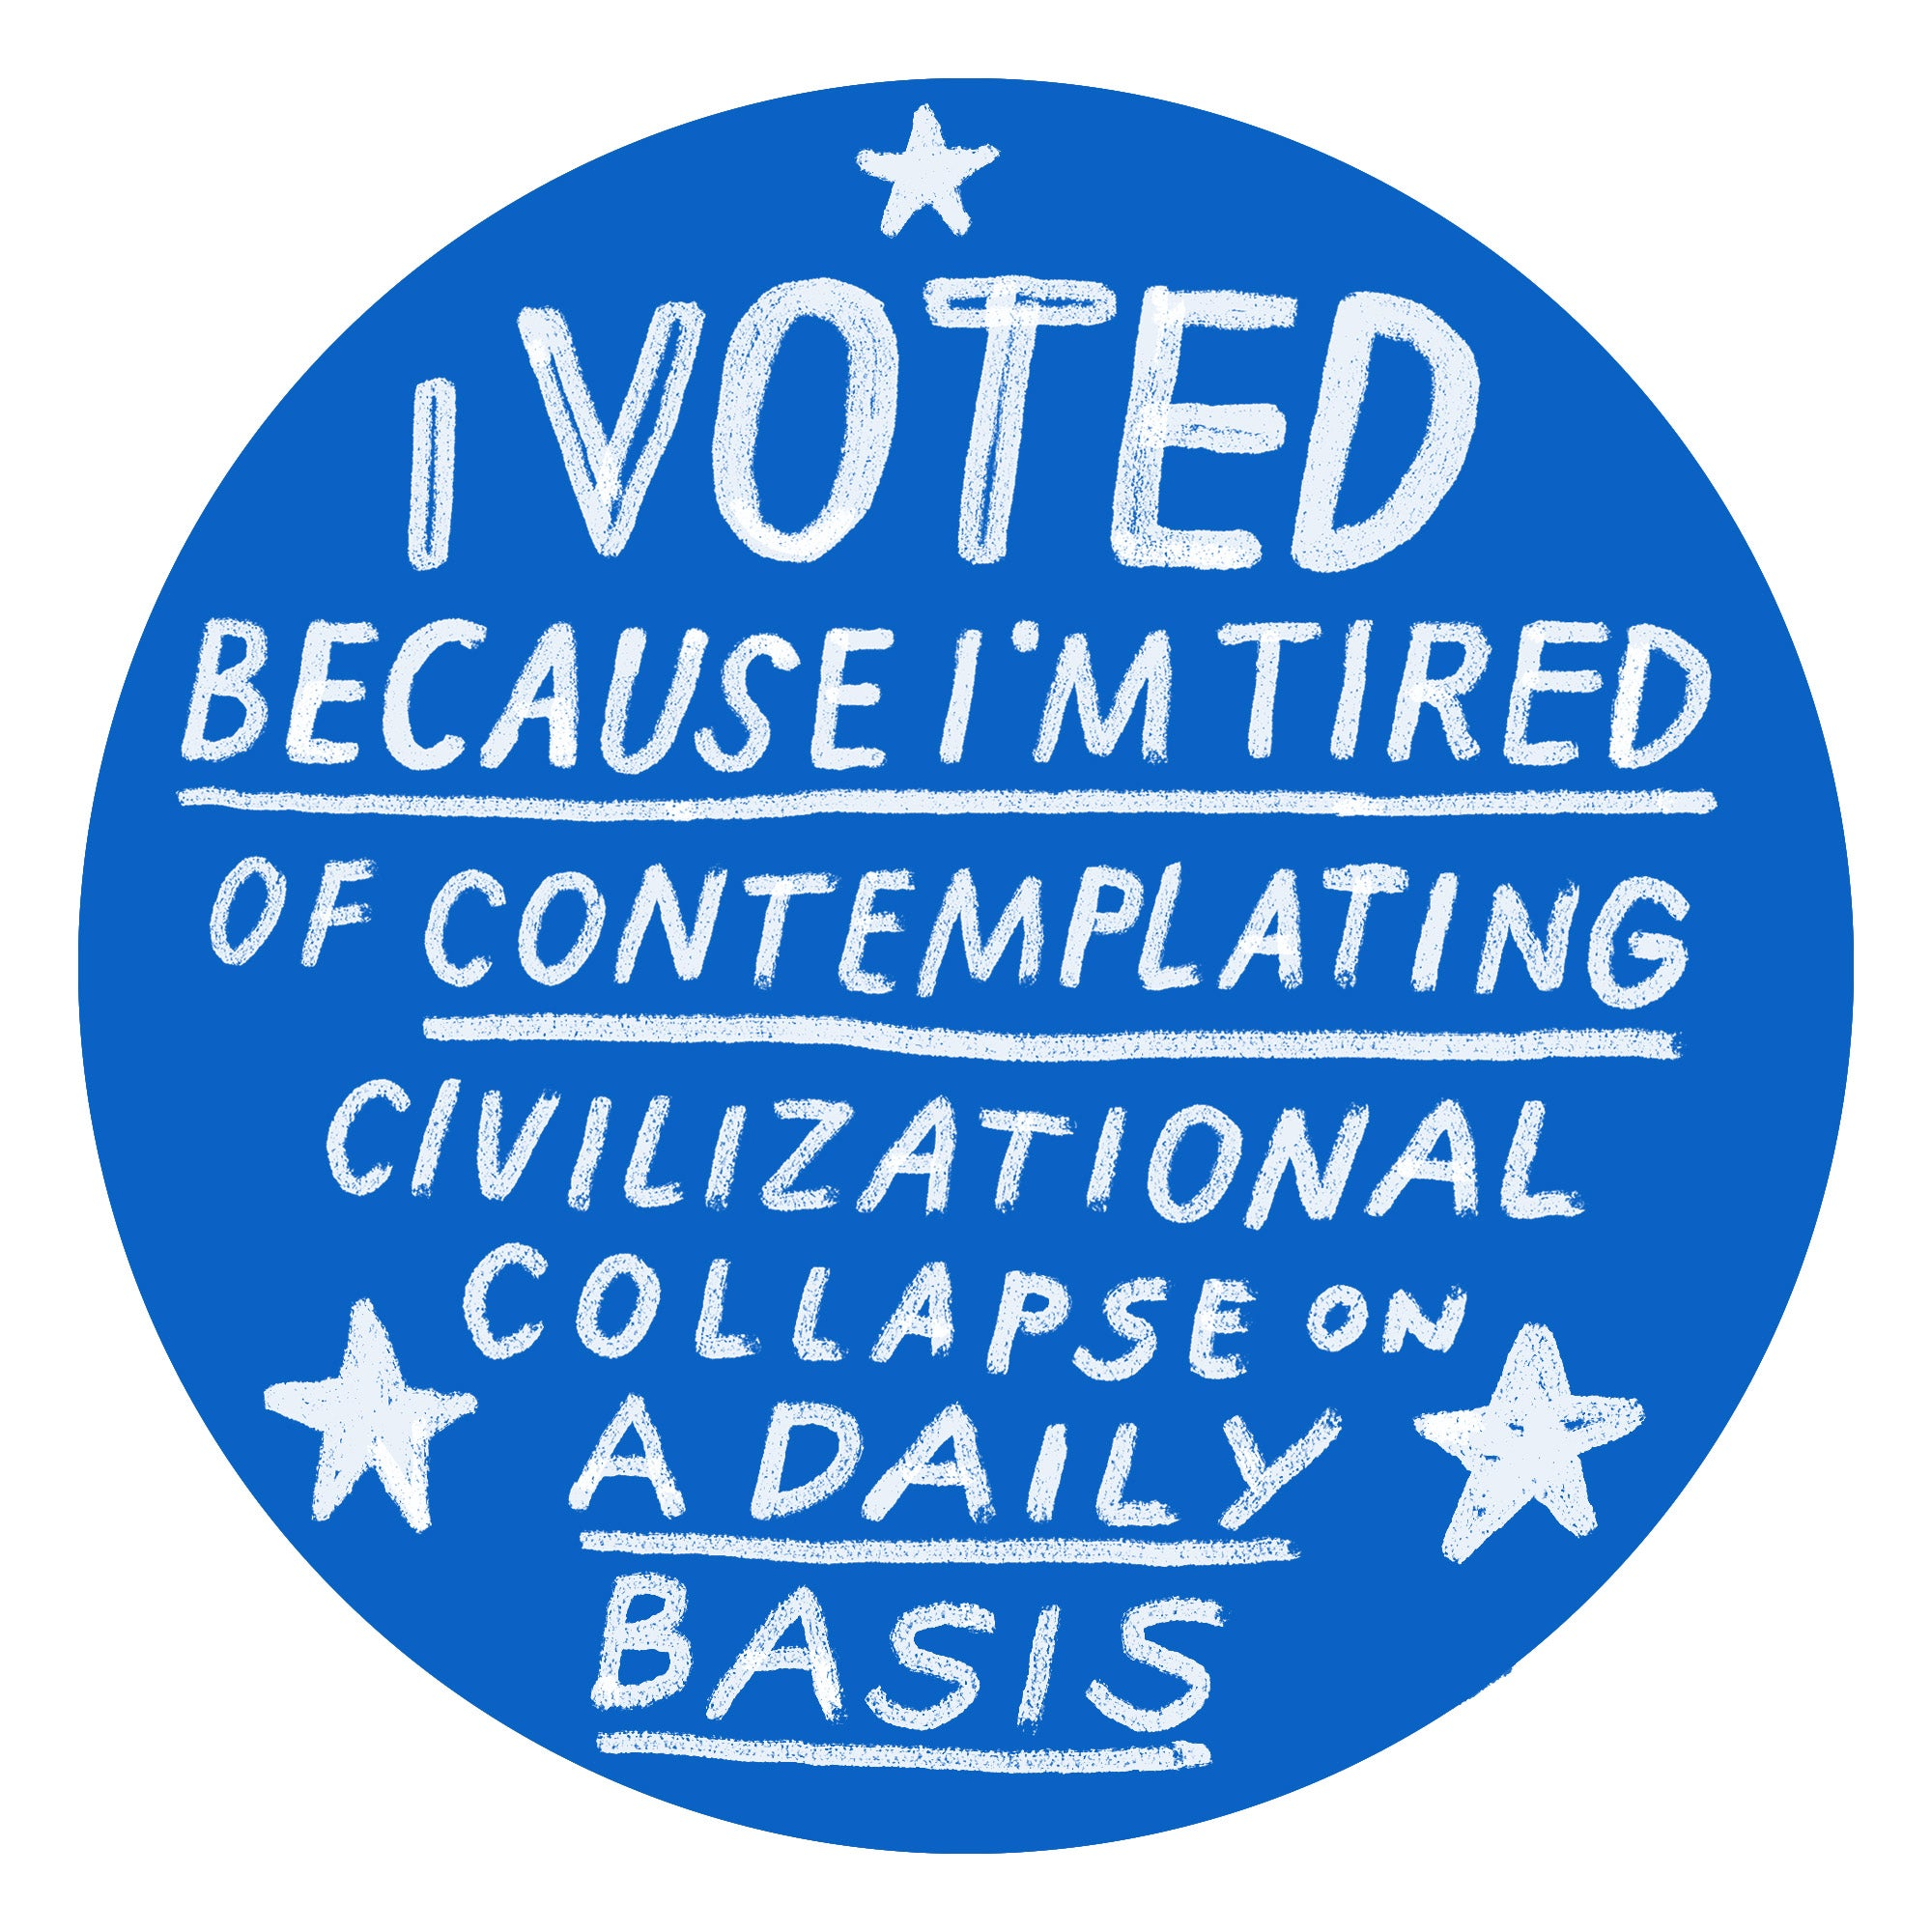 photograph regarding I Voted Stickers Printable named I Voted\u201d stickers for the 2018 midterm elections: Print